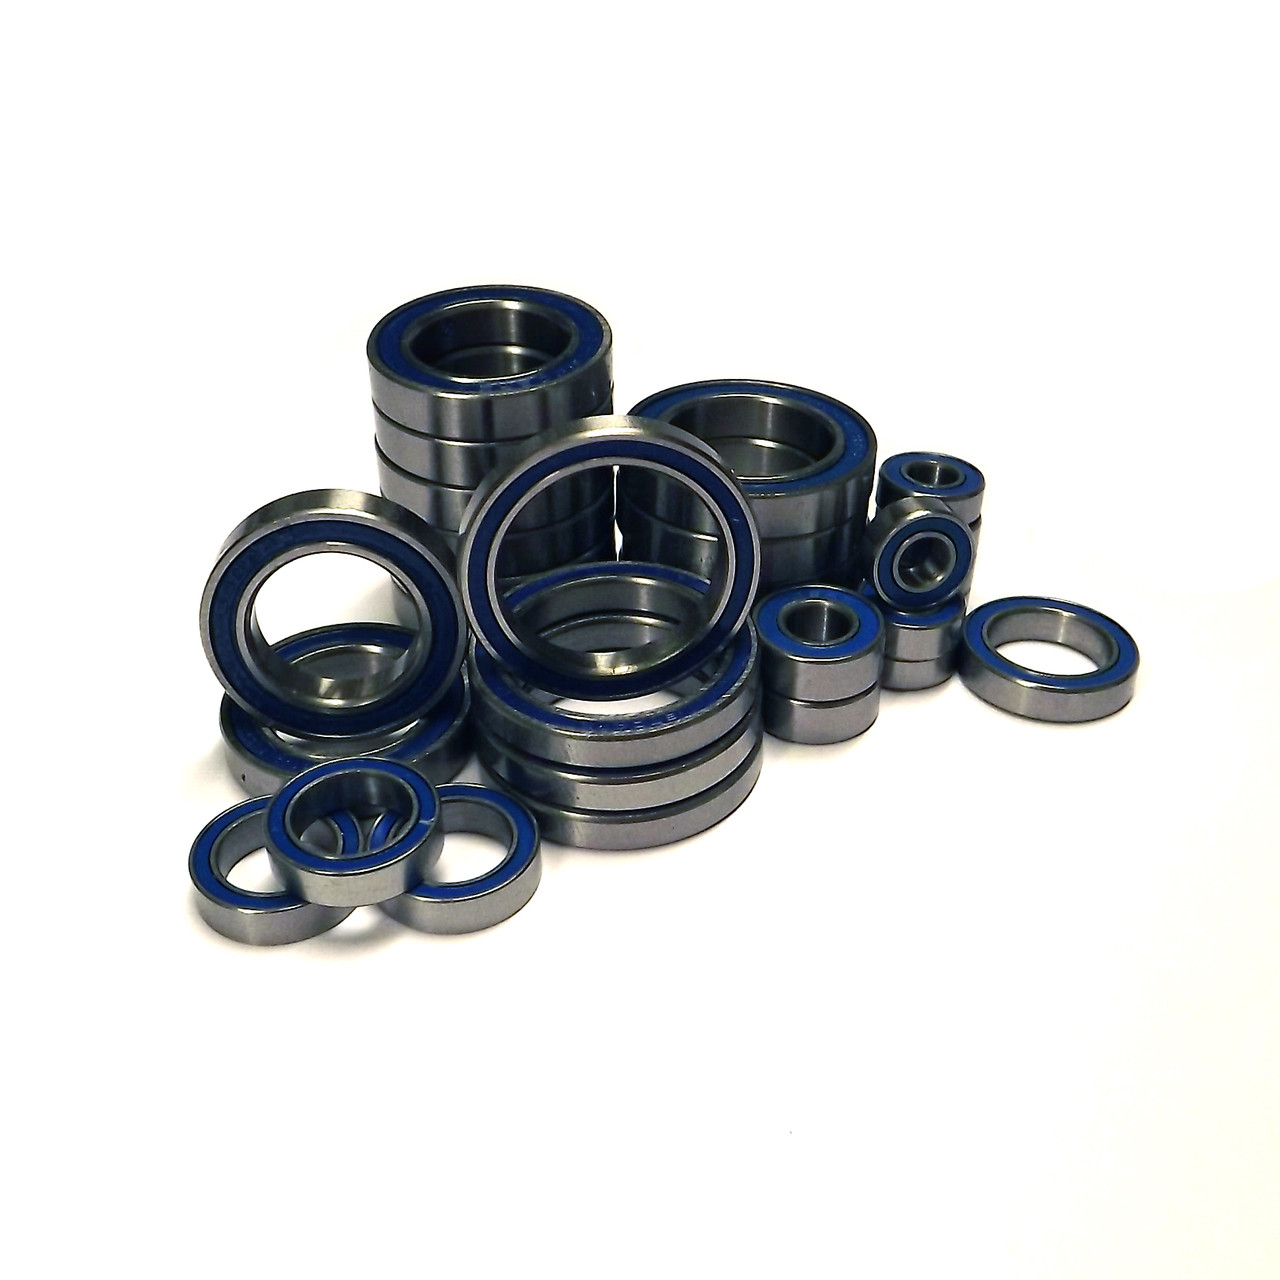 TRAXXAS X-MAXX 8S or 6S complete rubber sealed bearing kit.  Comes with a full 35 pieces and replaces all bearings on your truck.